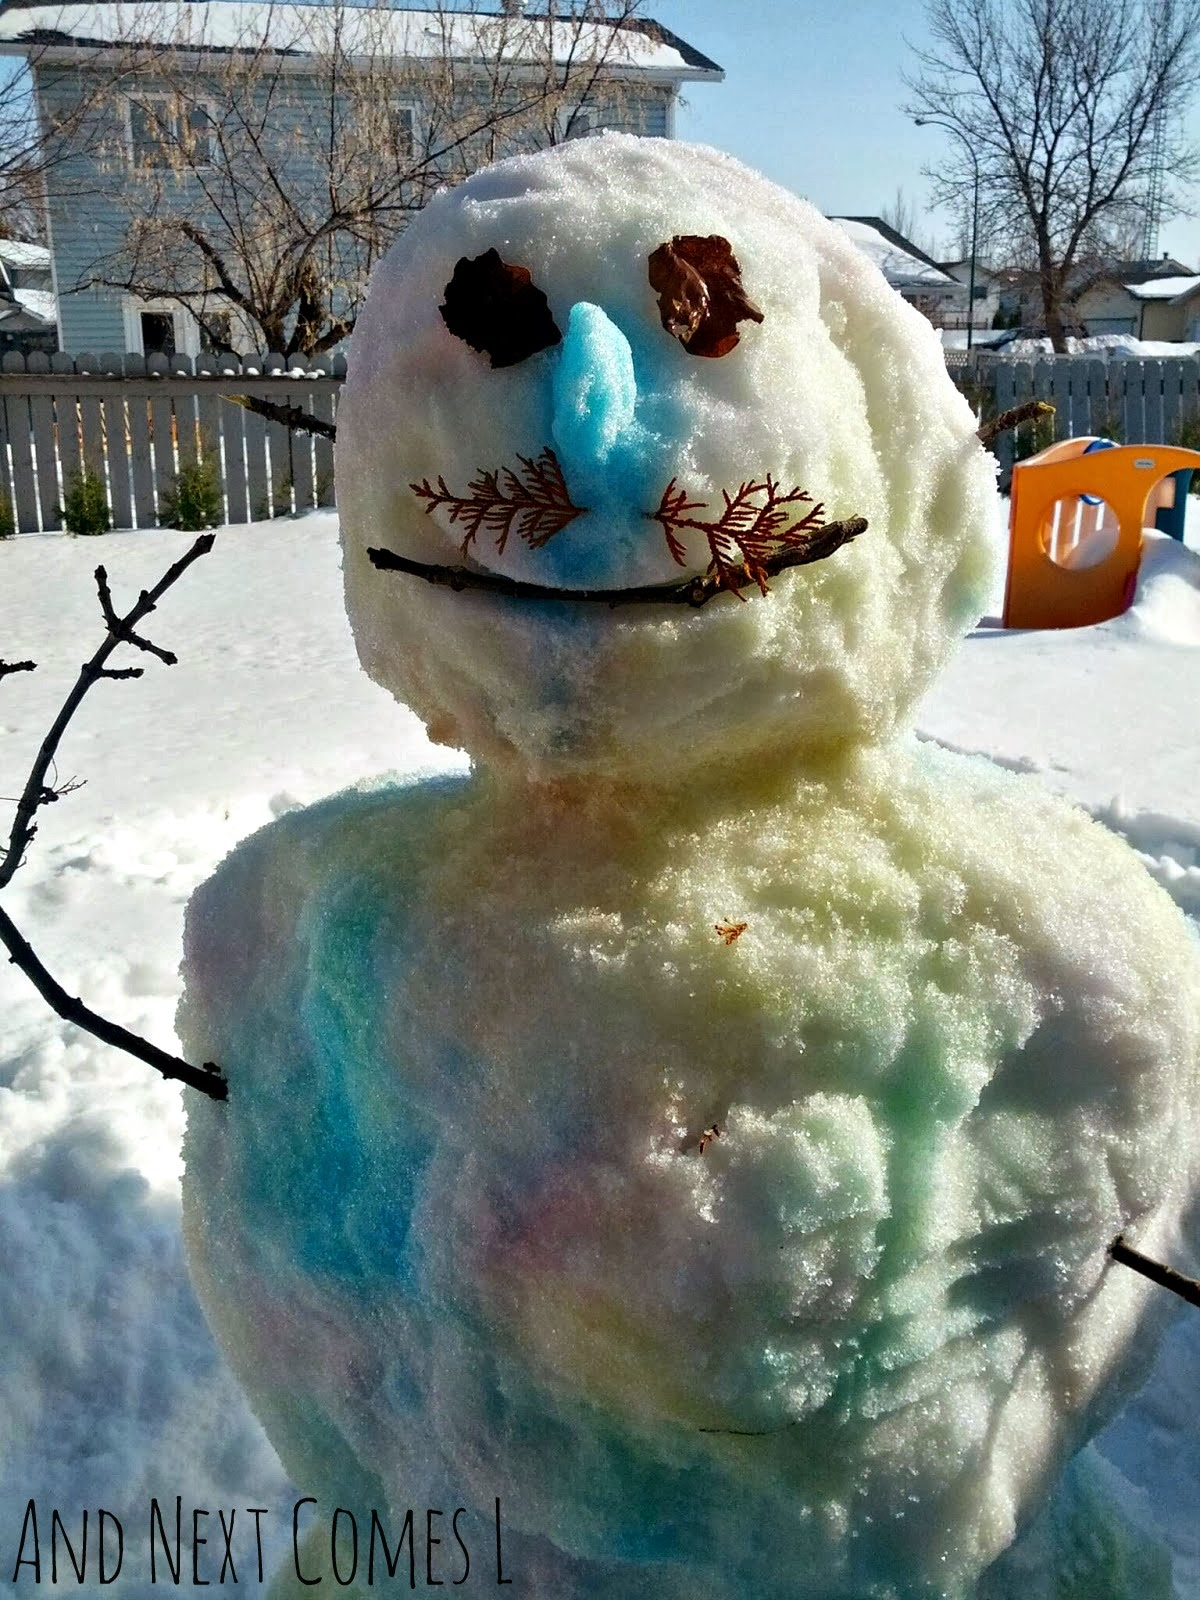 A spray painted snowman and next comes l for How to paint snowmen